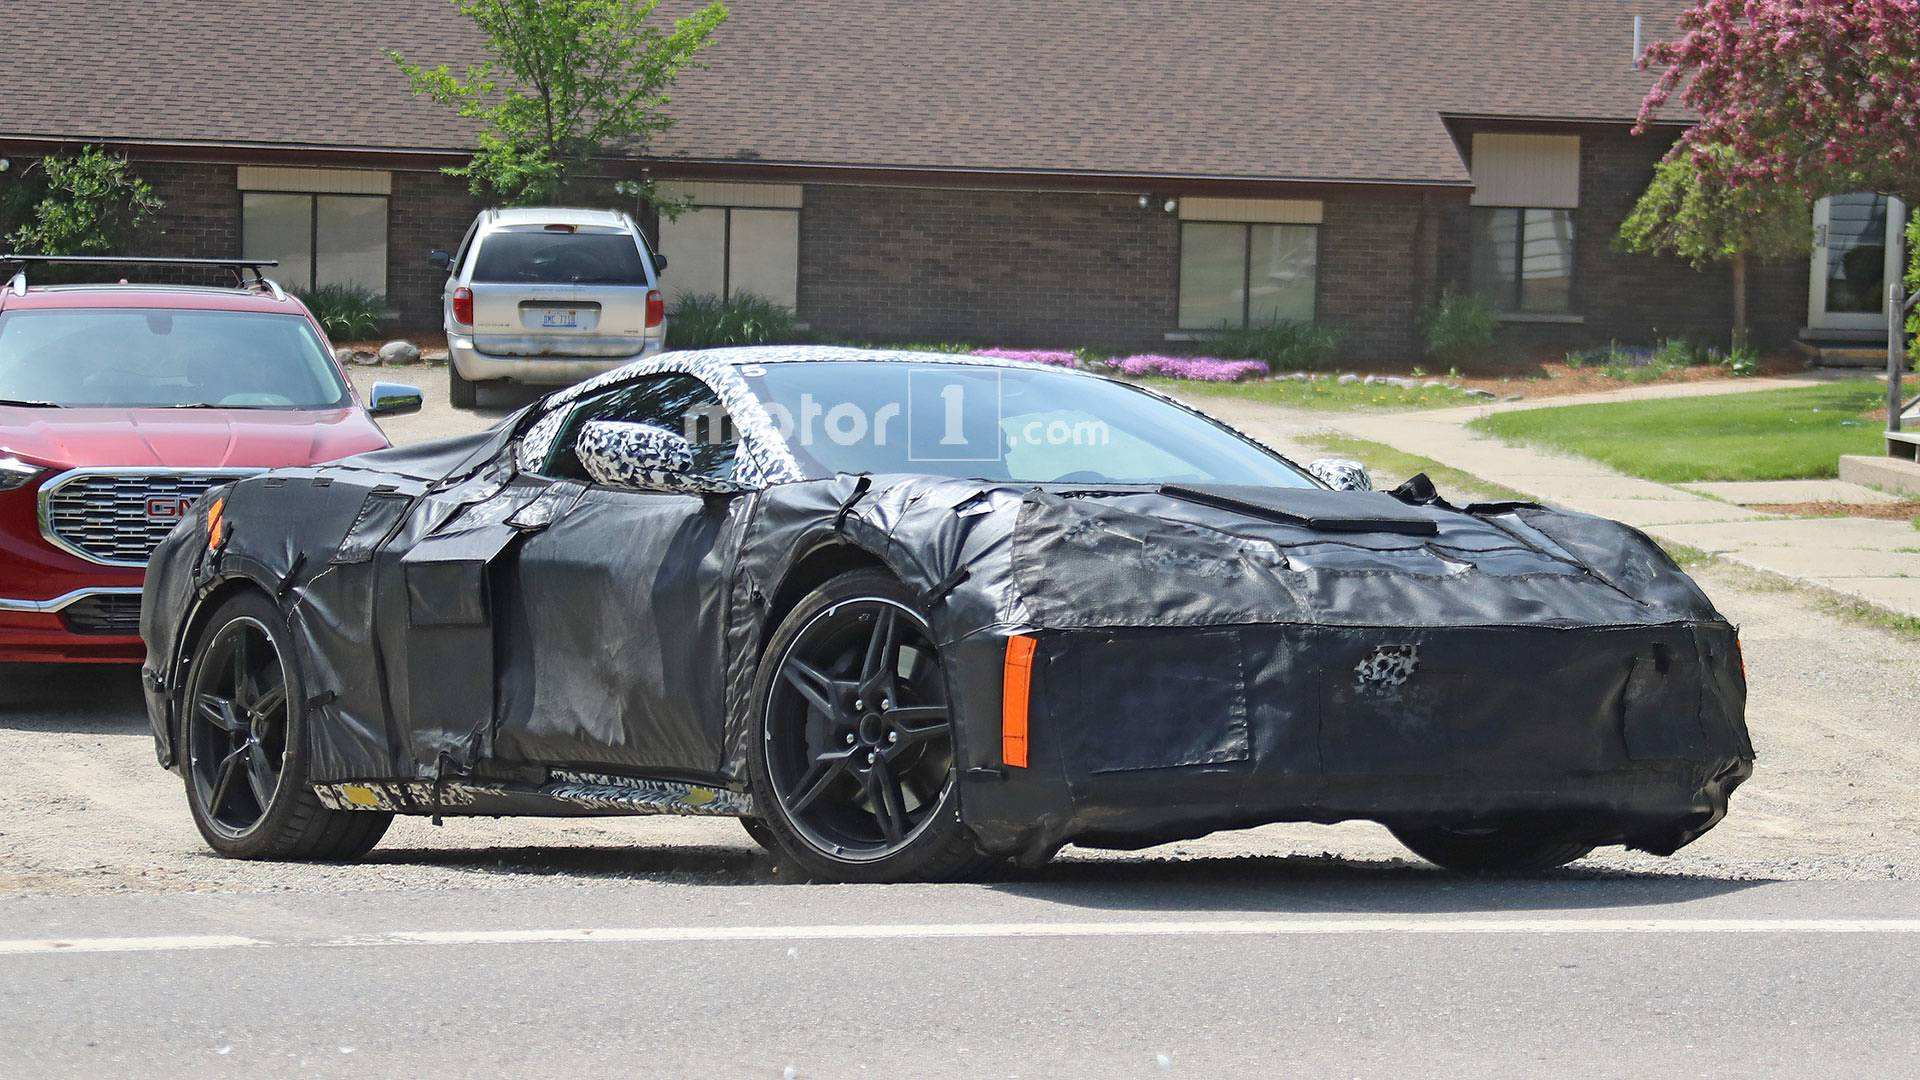 76 Great 2020 Corvette ZR1 Research New by 2020 Corvette ZR1